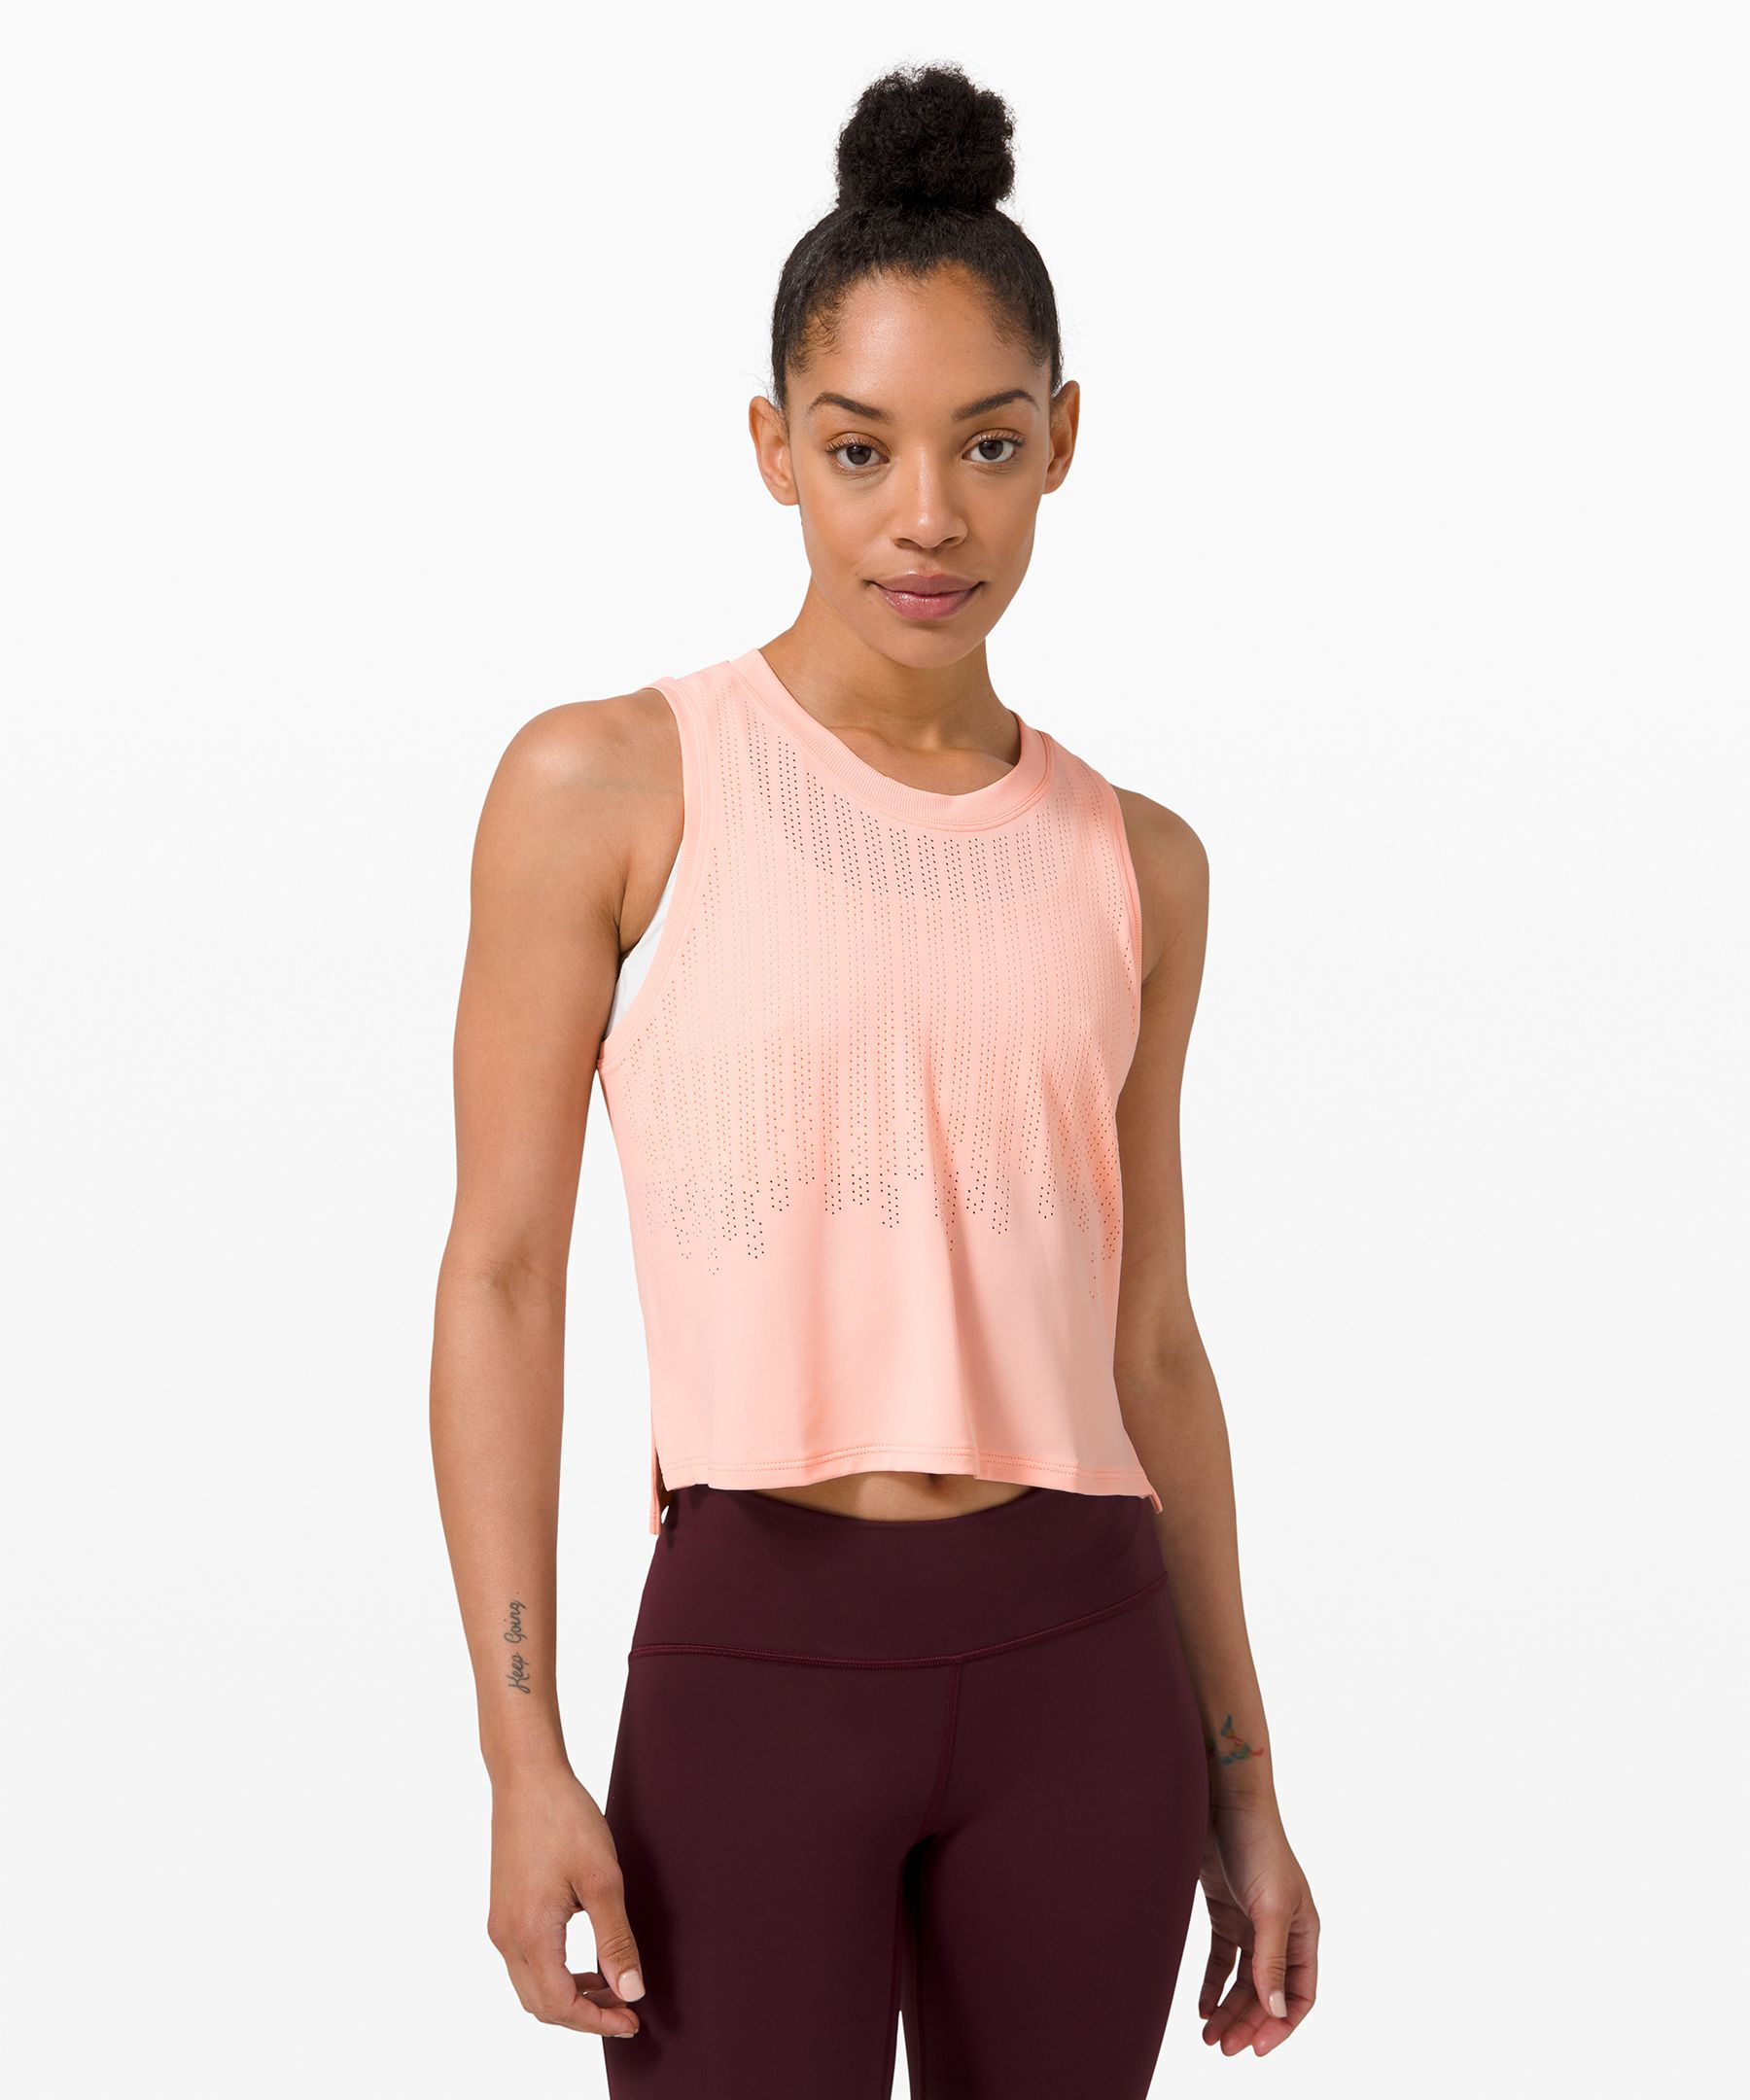 Soft, with a modern  silhouette, this tank is  perfect for restorative yoga,  intense workouts, and  everything in between.